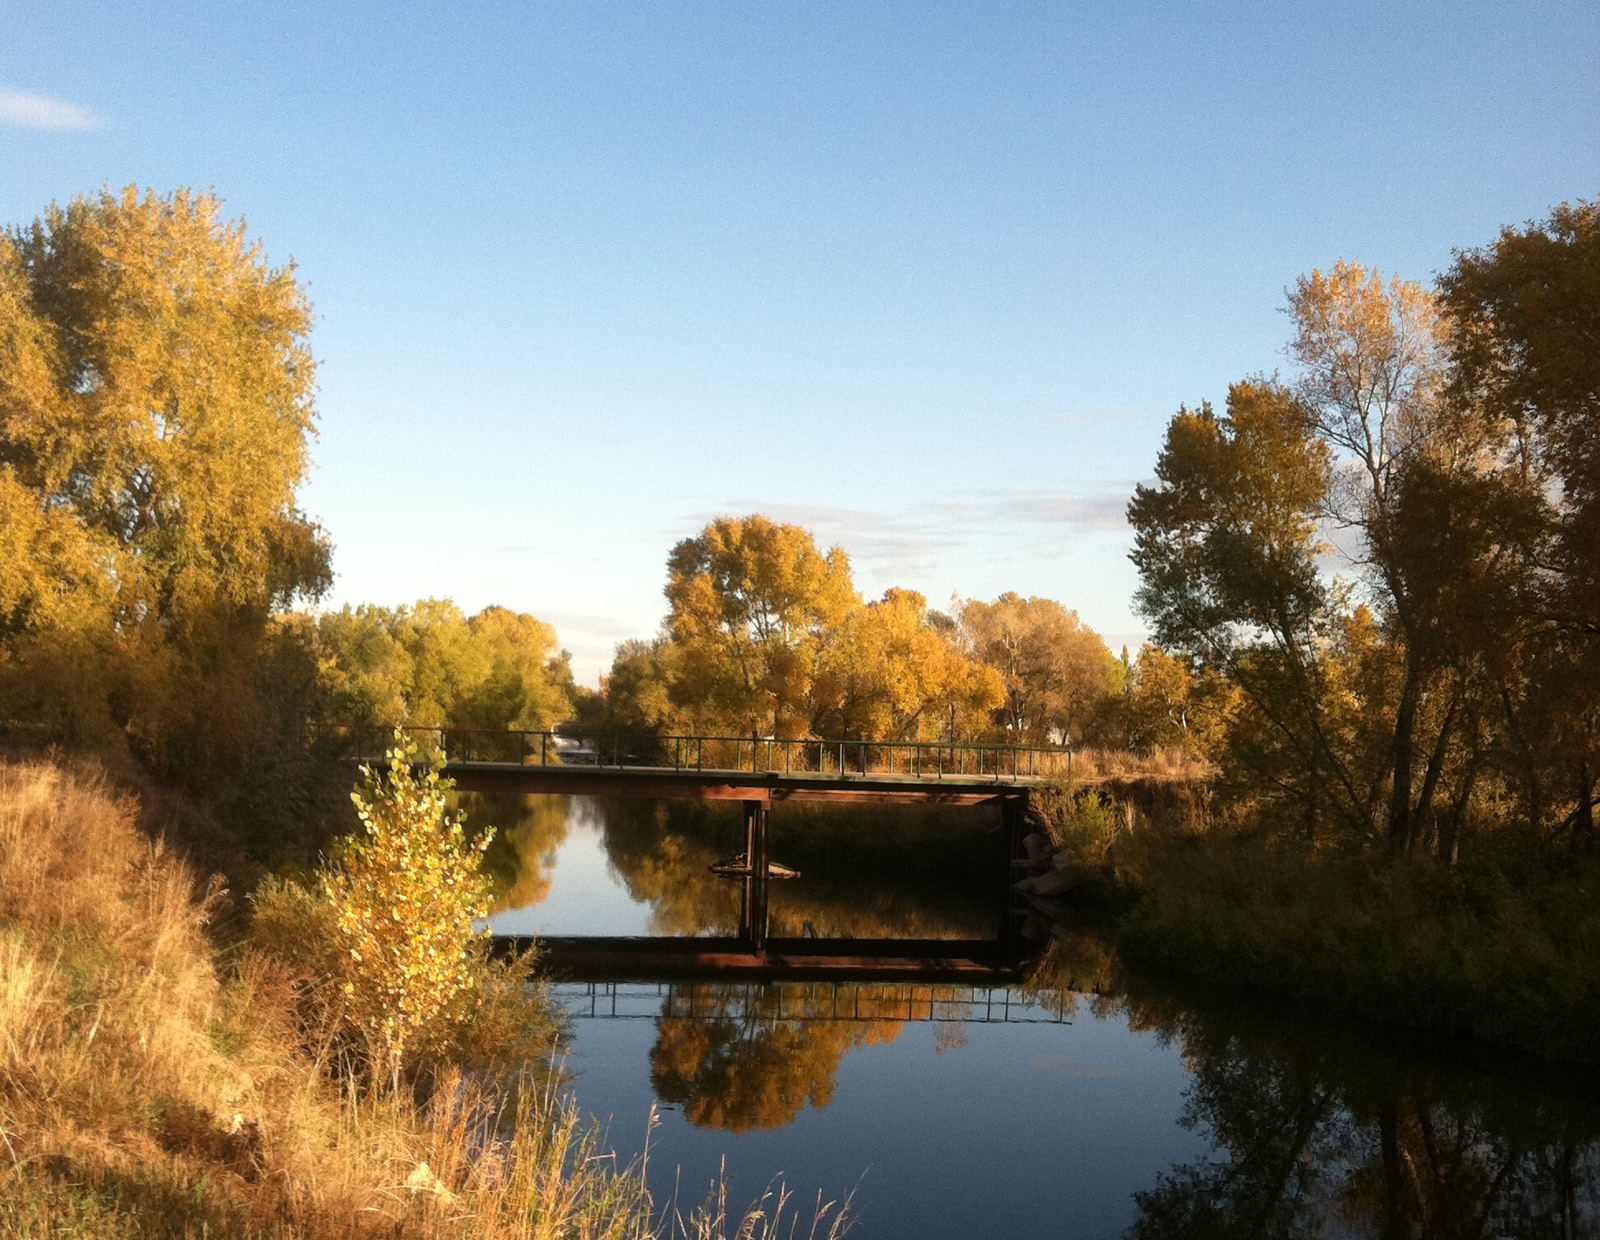 Poudre River and native vegetation make a scenic setting for Pateros Creek